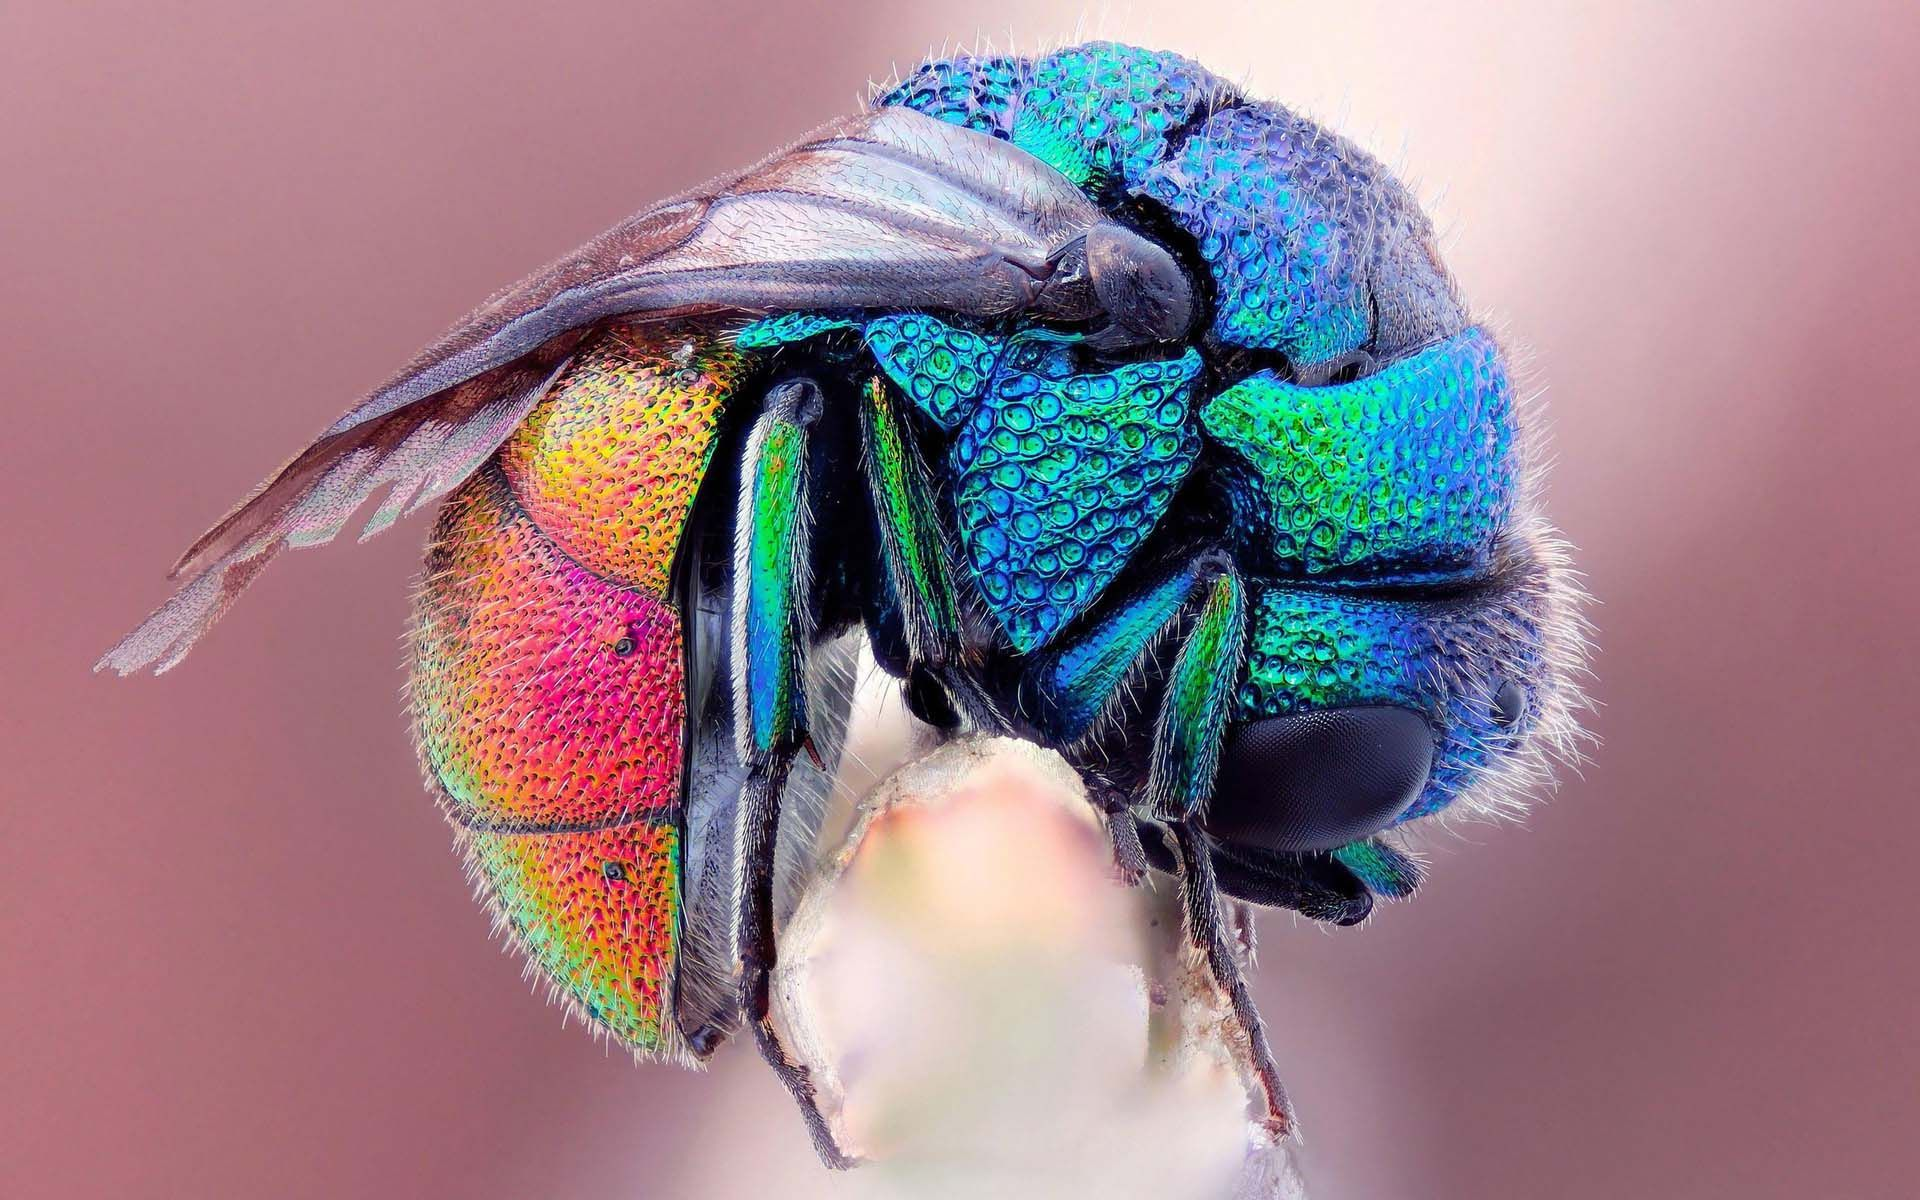 10 Most Beautiful and Colorful Insects in Nature - Wow Amazing